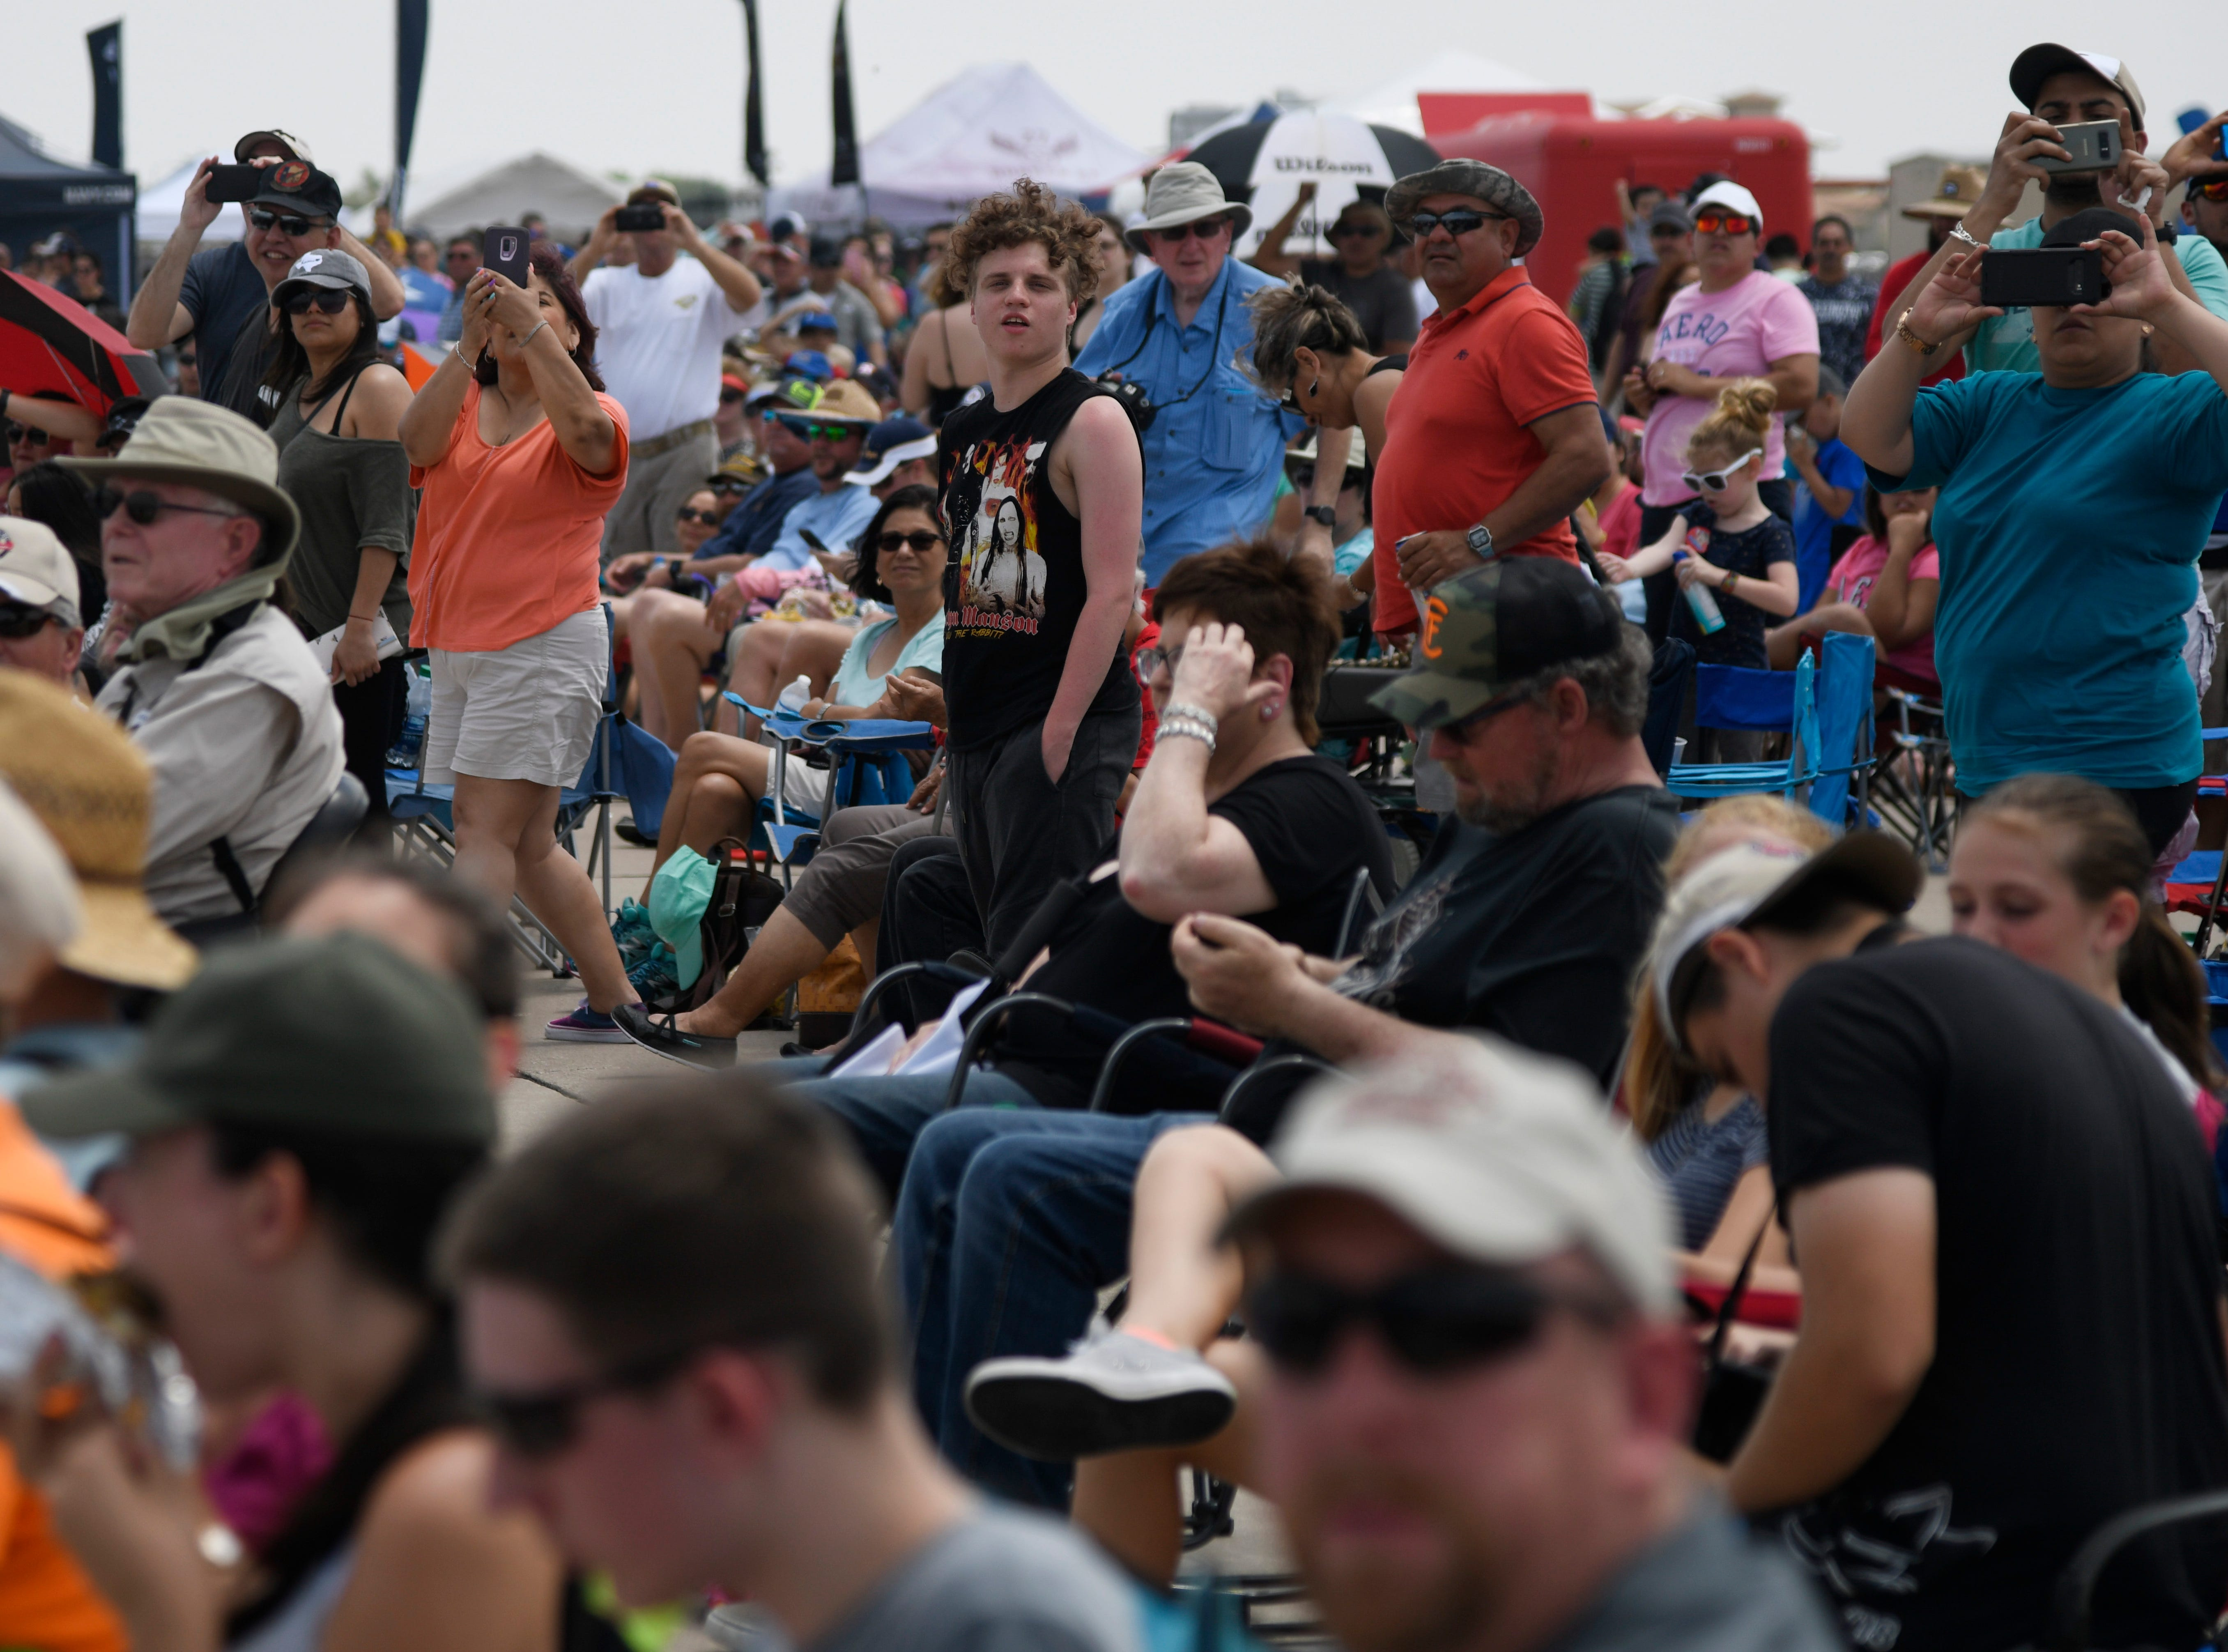 Attendees watch a performance during the Wings Over South Texas Air Show, Saturday, April 13, 2019, at NAS Corpus Christi.